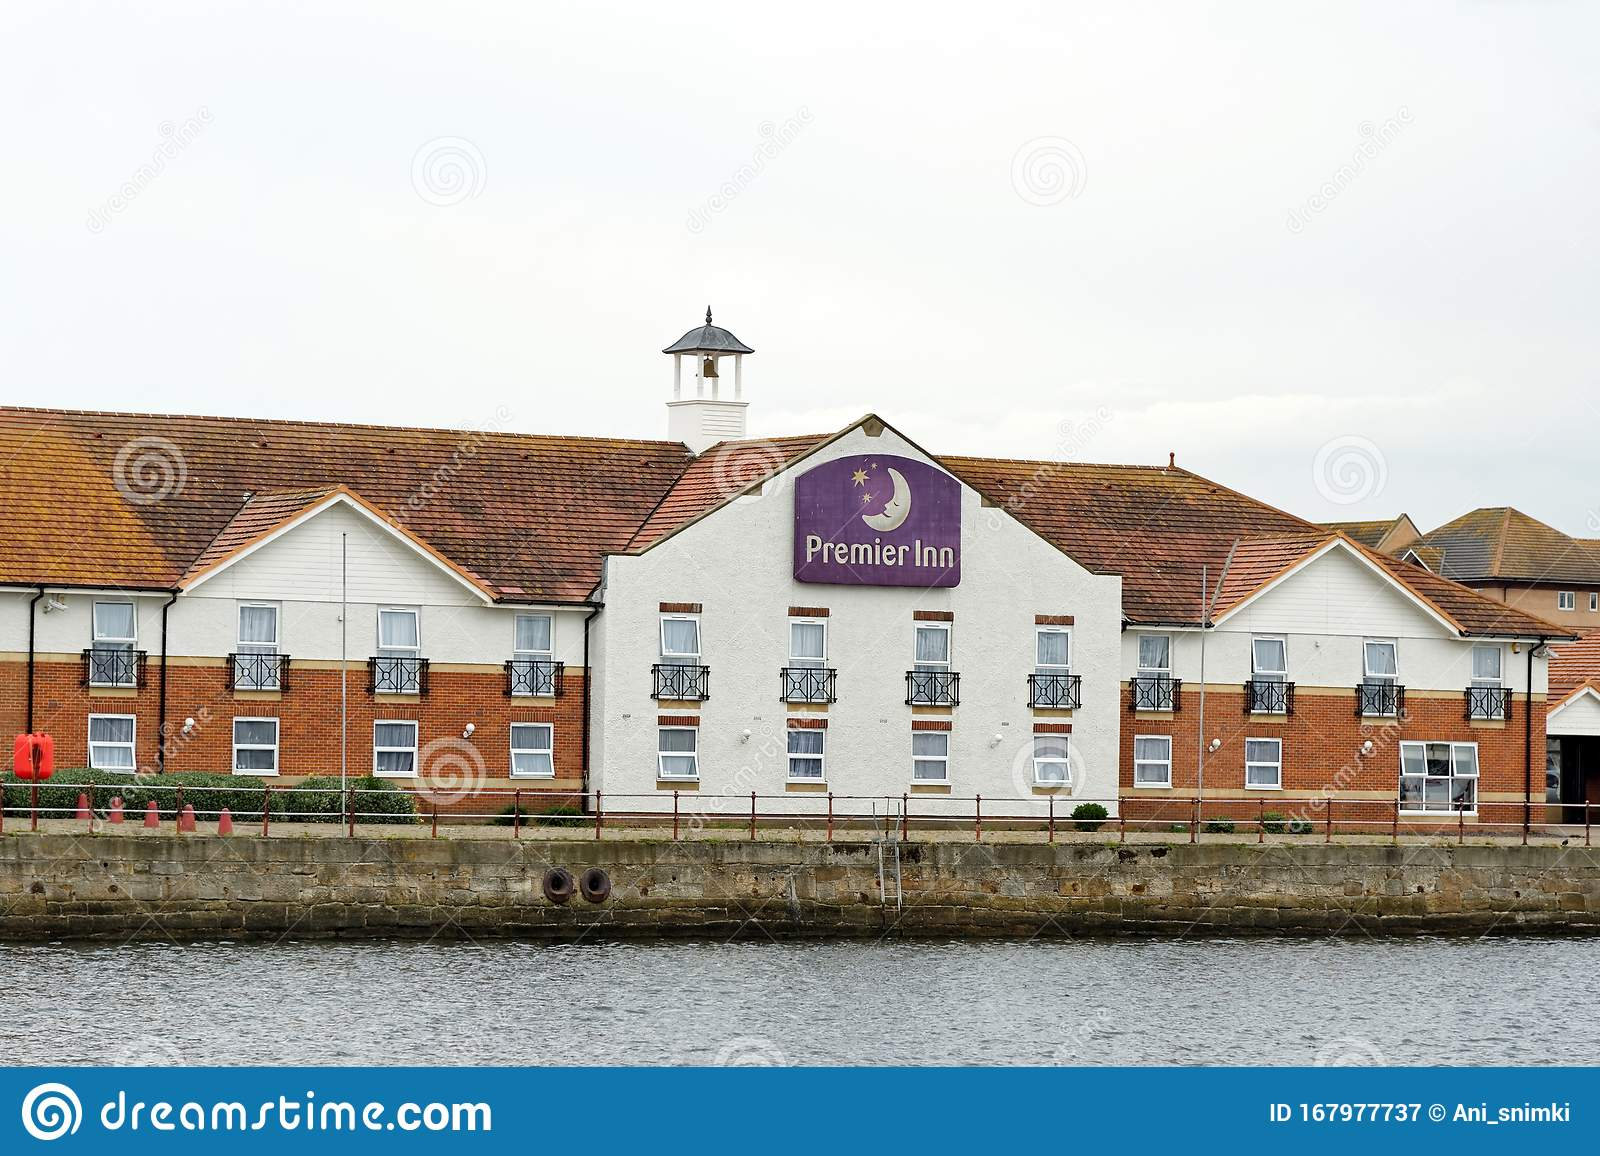 hartlepool-uk-june-premier-inn-british-exclusive-hotel-chain-s-largest-brand-more-than-rooms-hotels-england-167977737.jpg?profile=RESIZE_400x